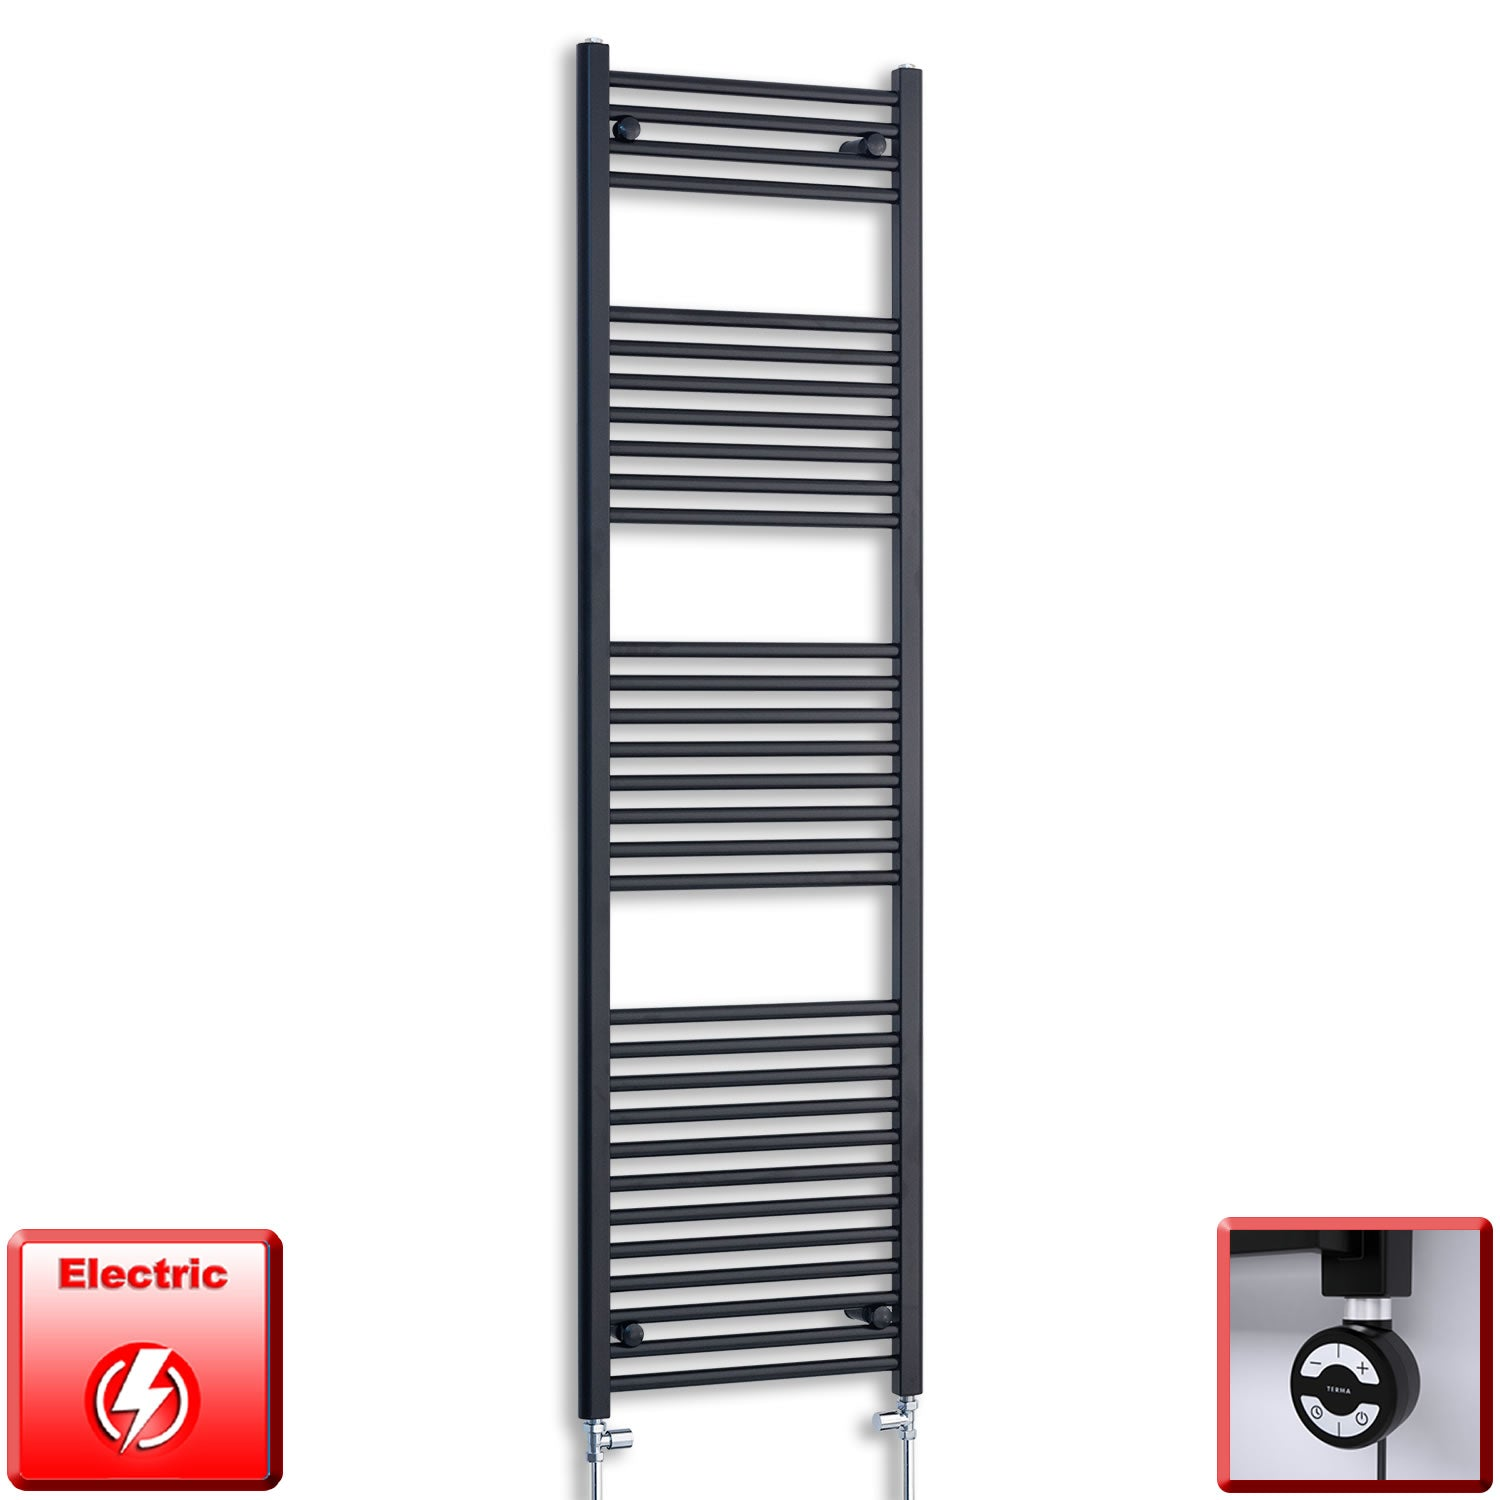 600mm Wide 1800mm High Pre-Filled Black Electric Towel Rail Radiator With Thermostatic MOA Element